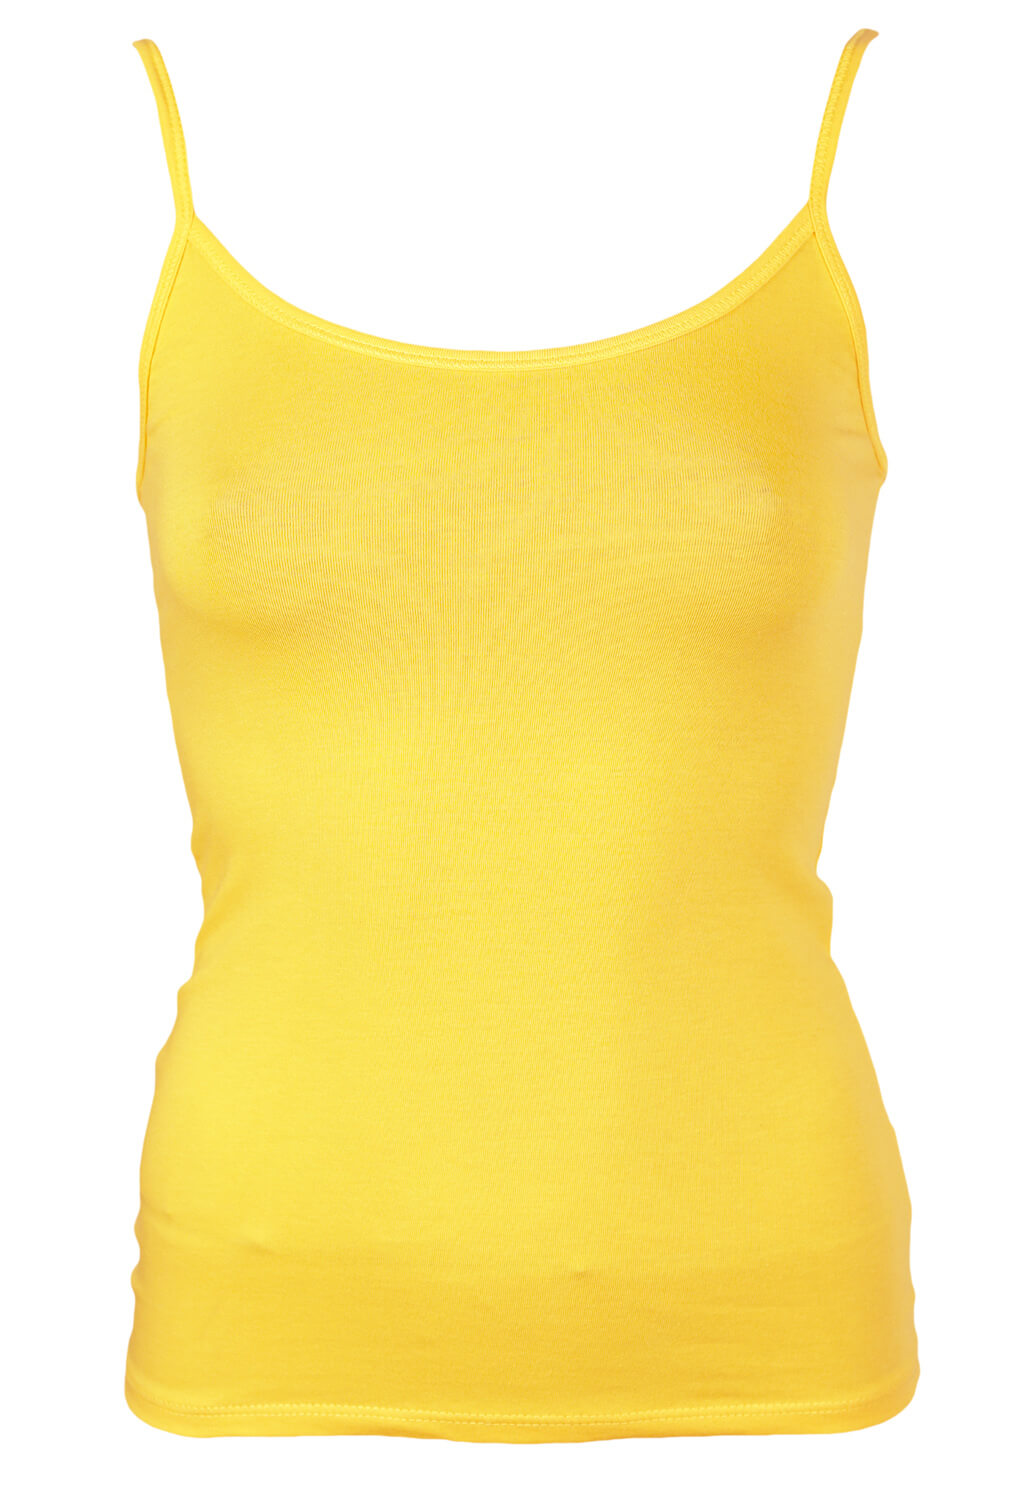 Maieu Pimkie Basic Yellow